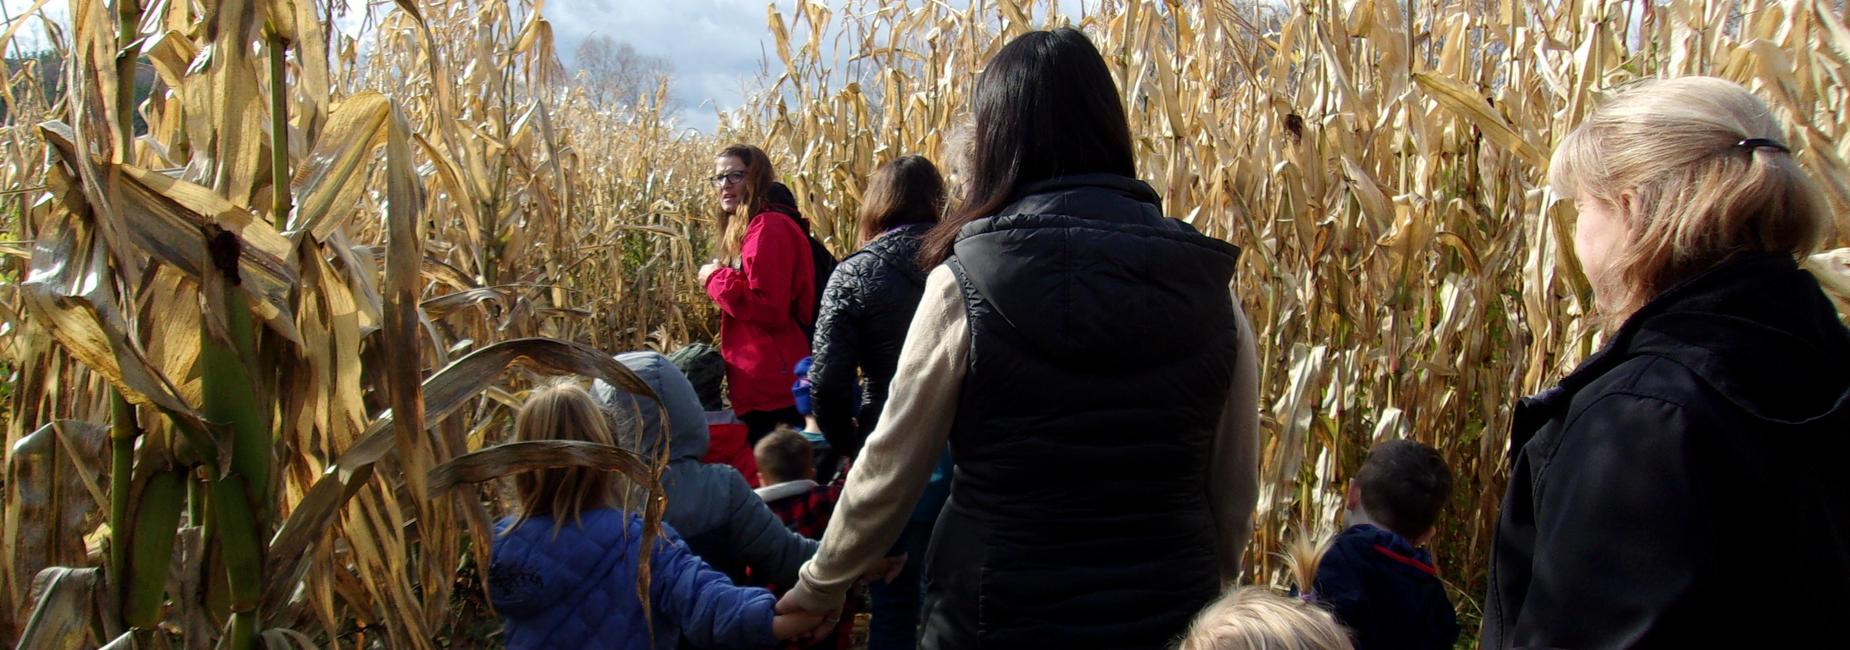 people walking through corn maze